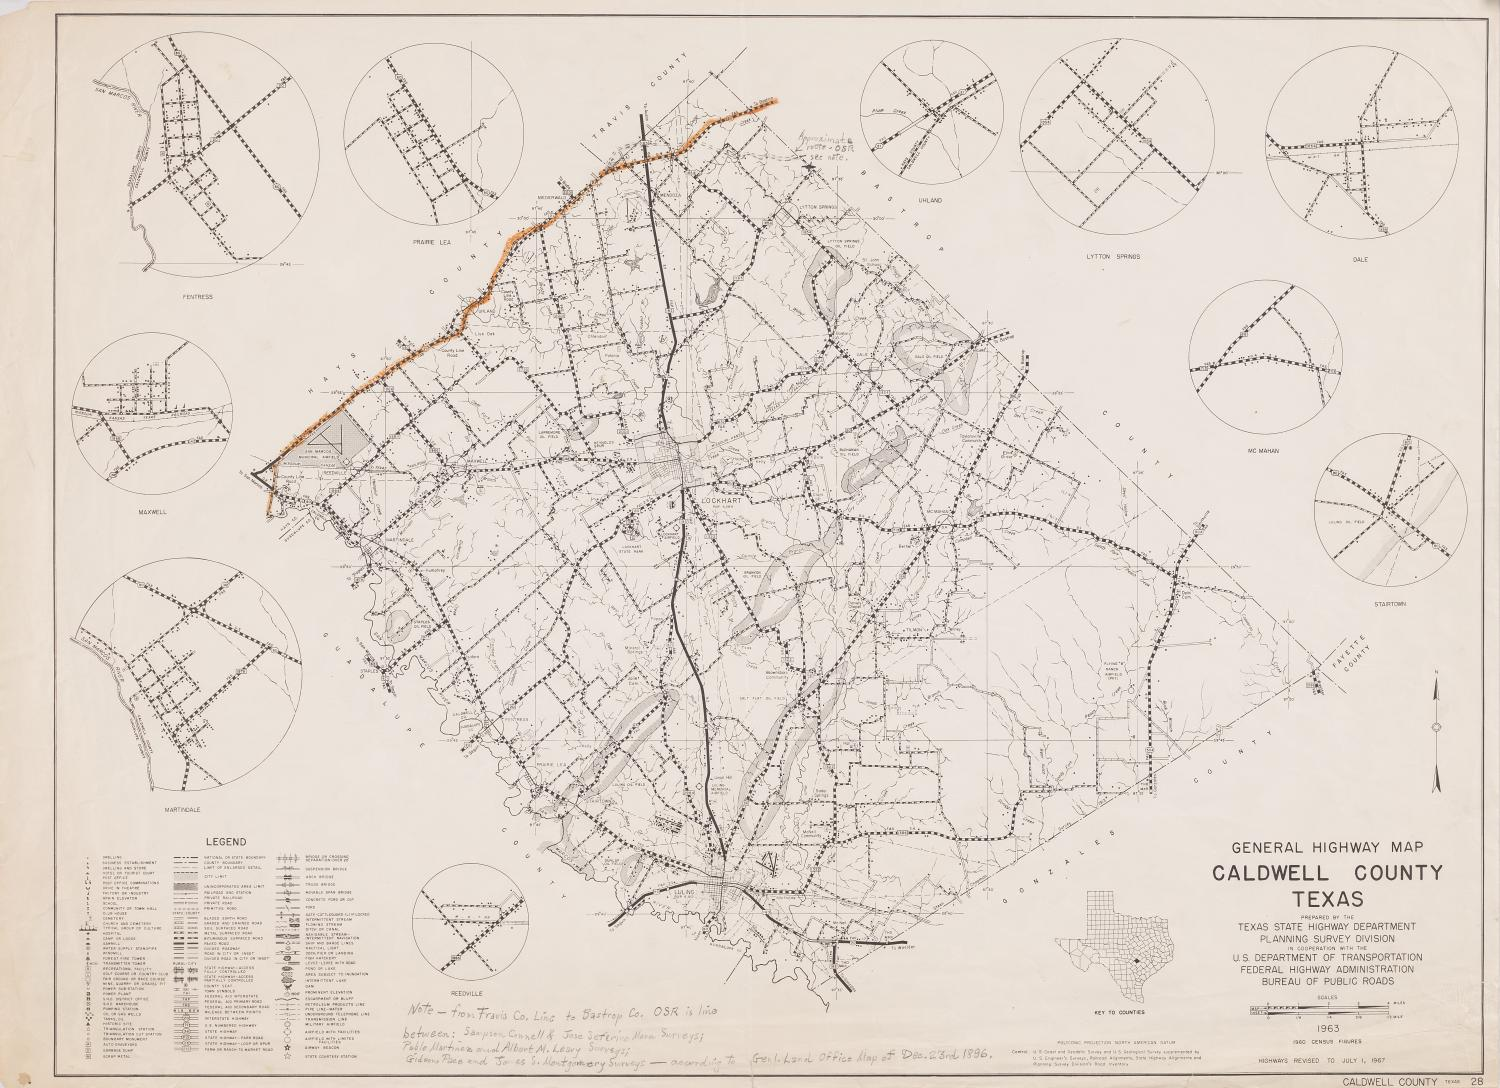 General Highway Map Caldwell County, Texas - The Portal to Texas History